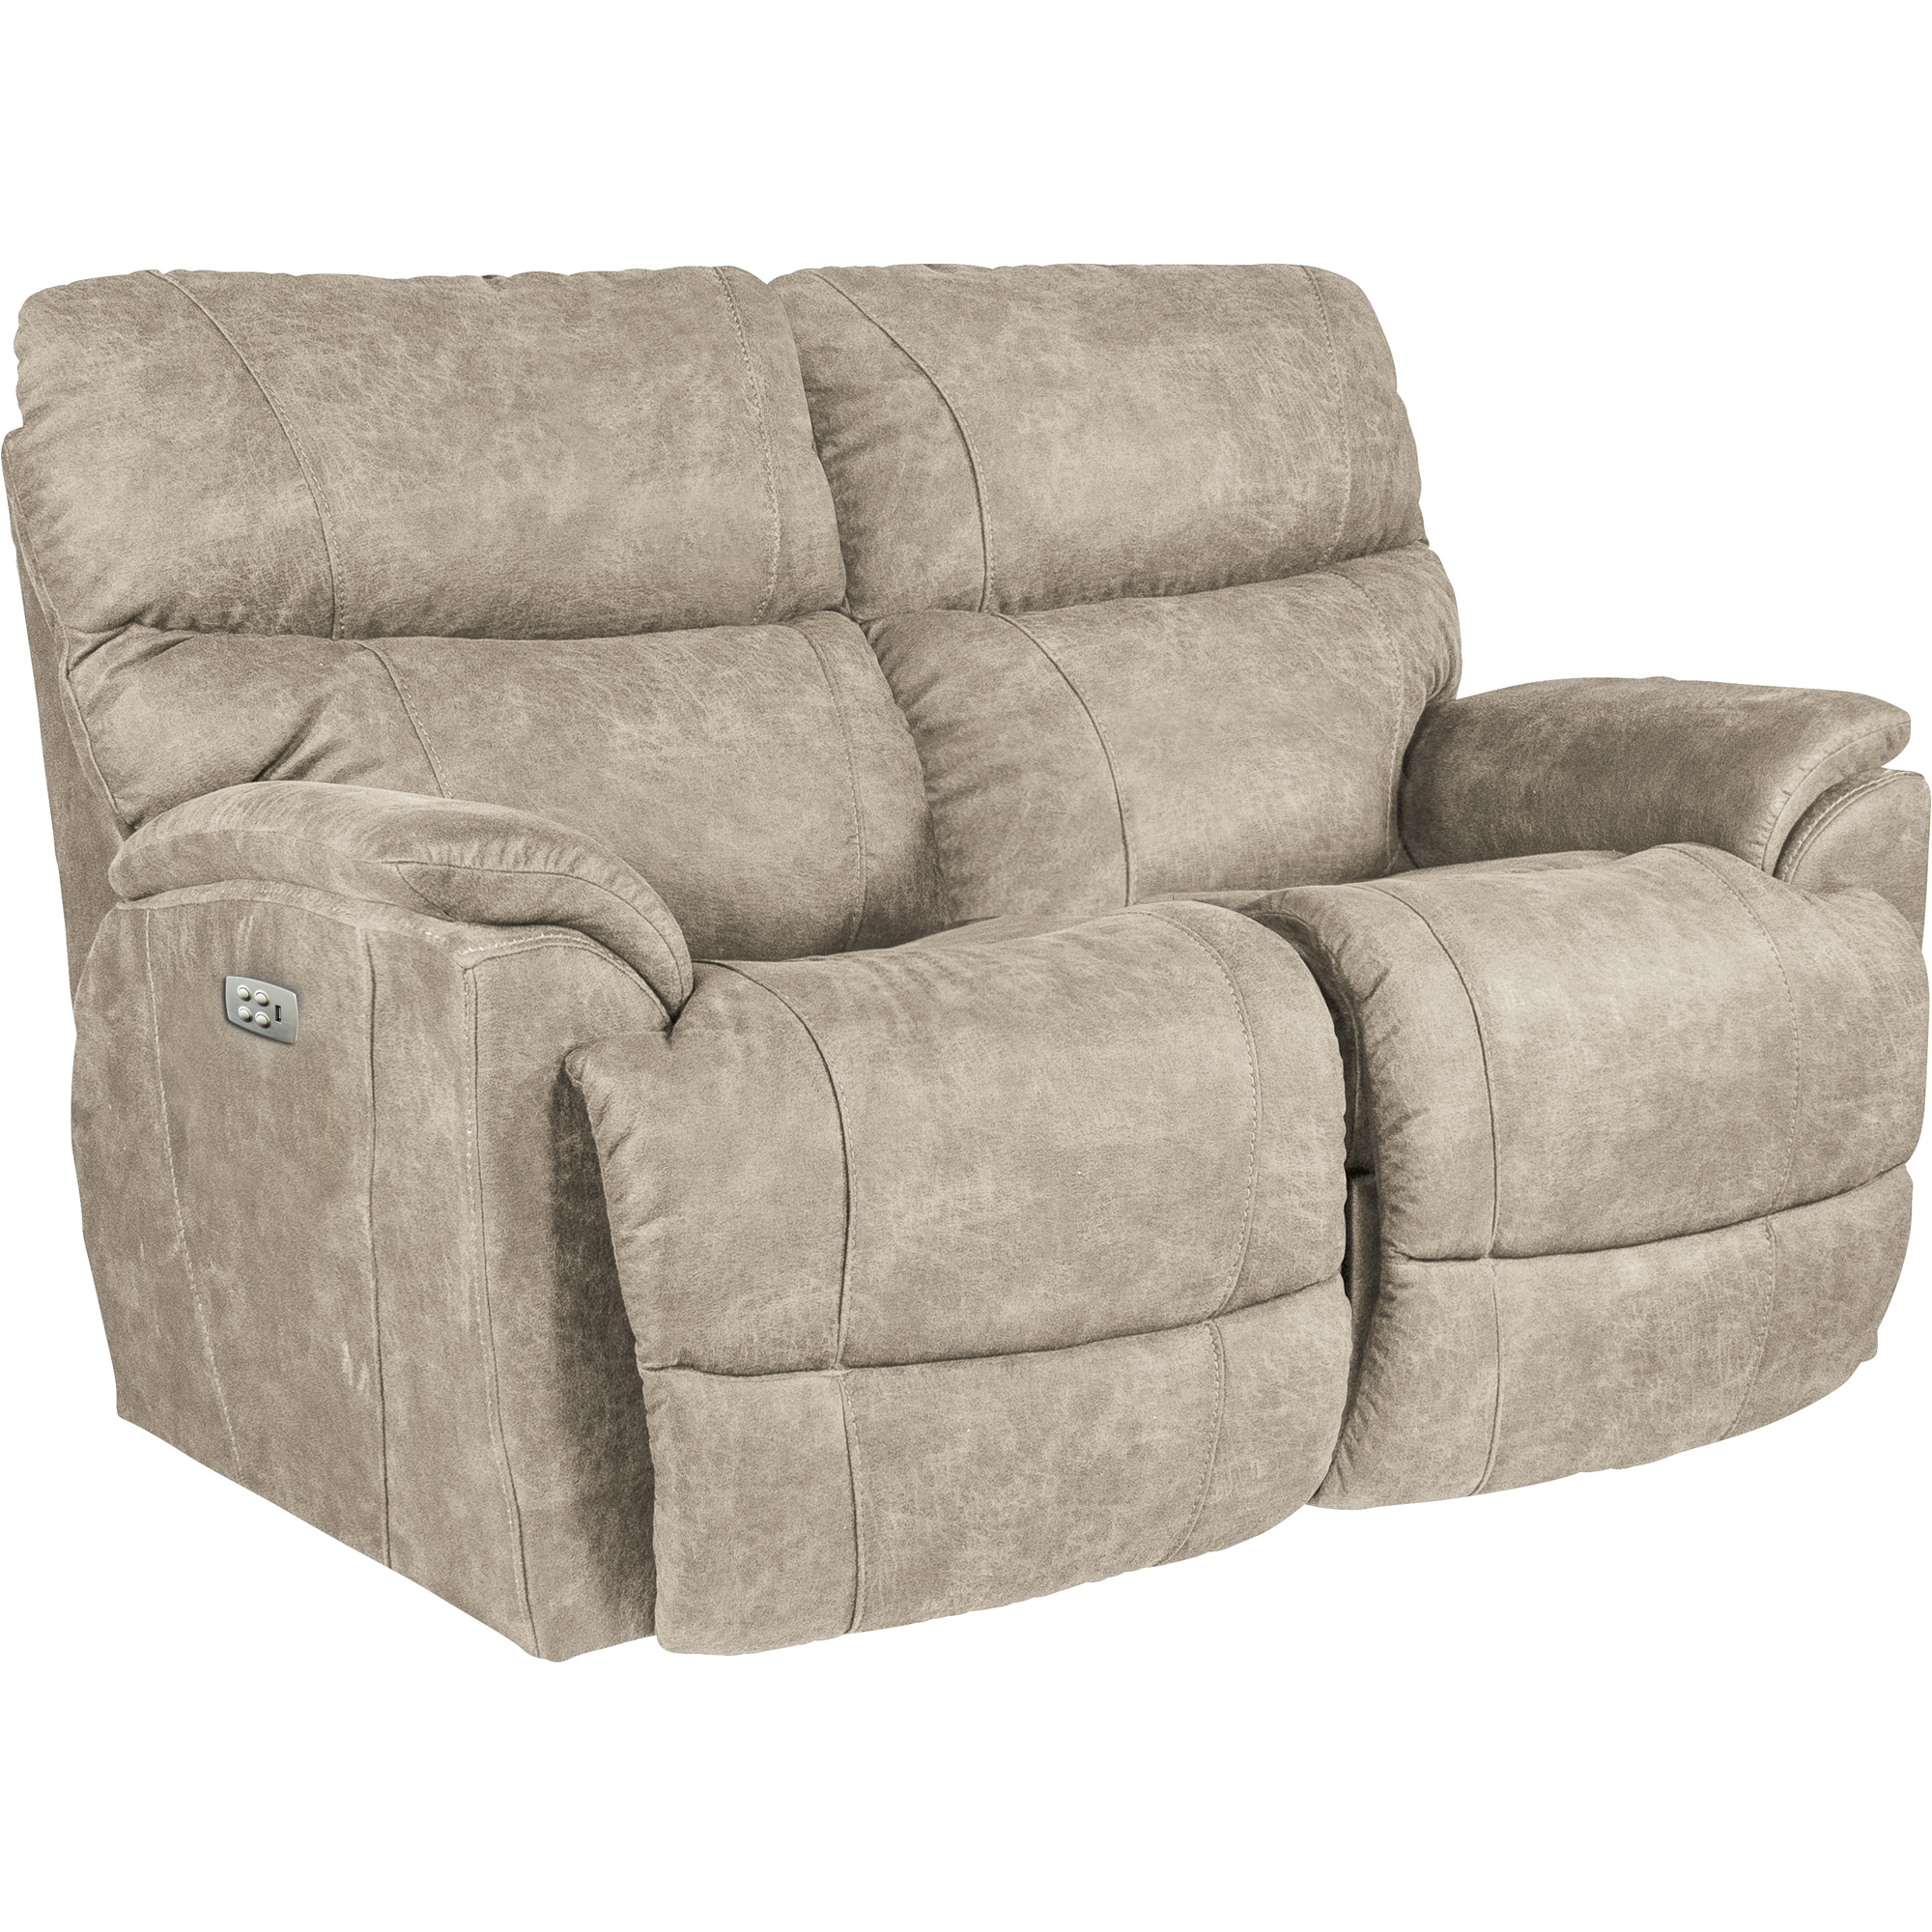 La-Z-Boy | Trouper Stucco Power Plus Reclining Loveseat Sofa